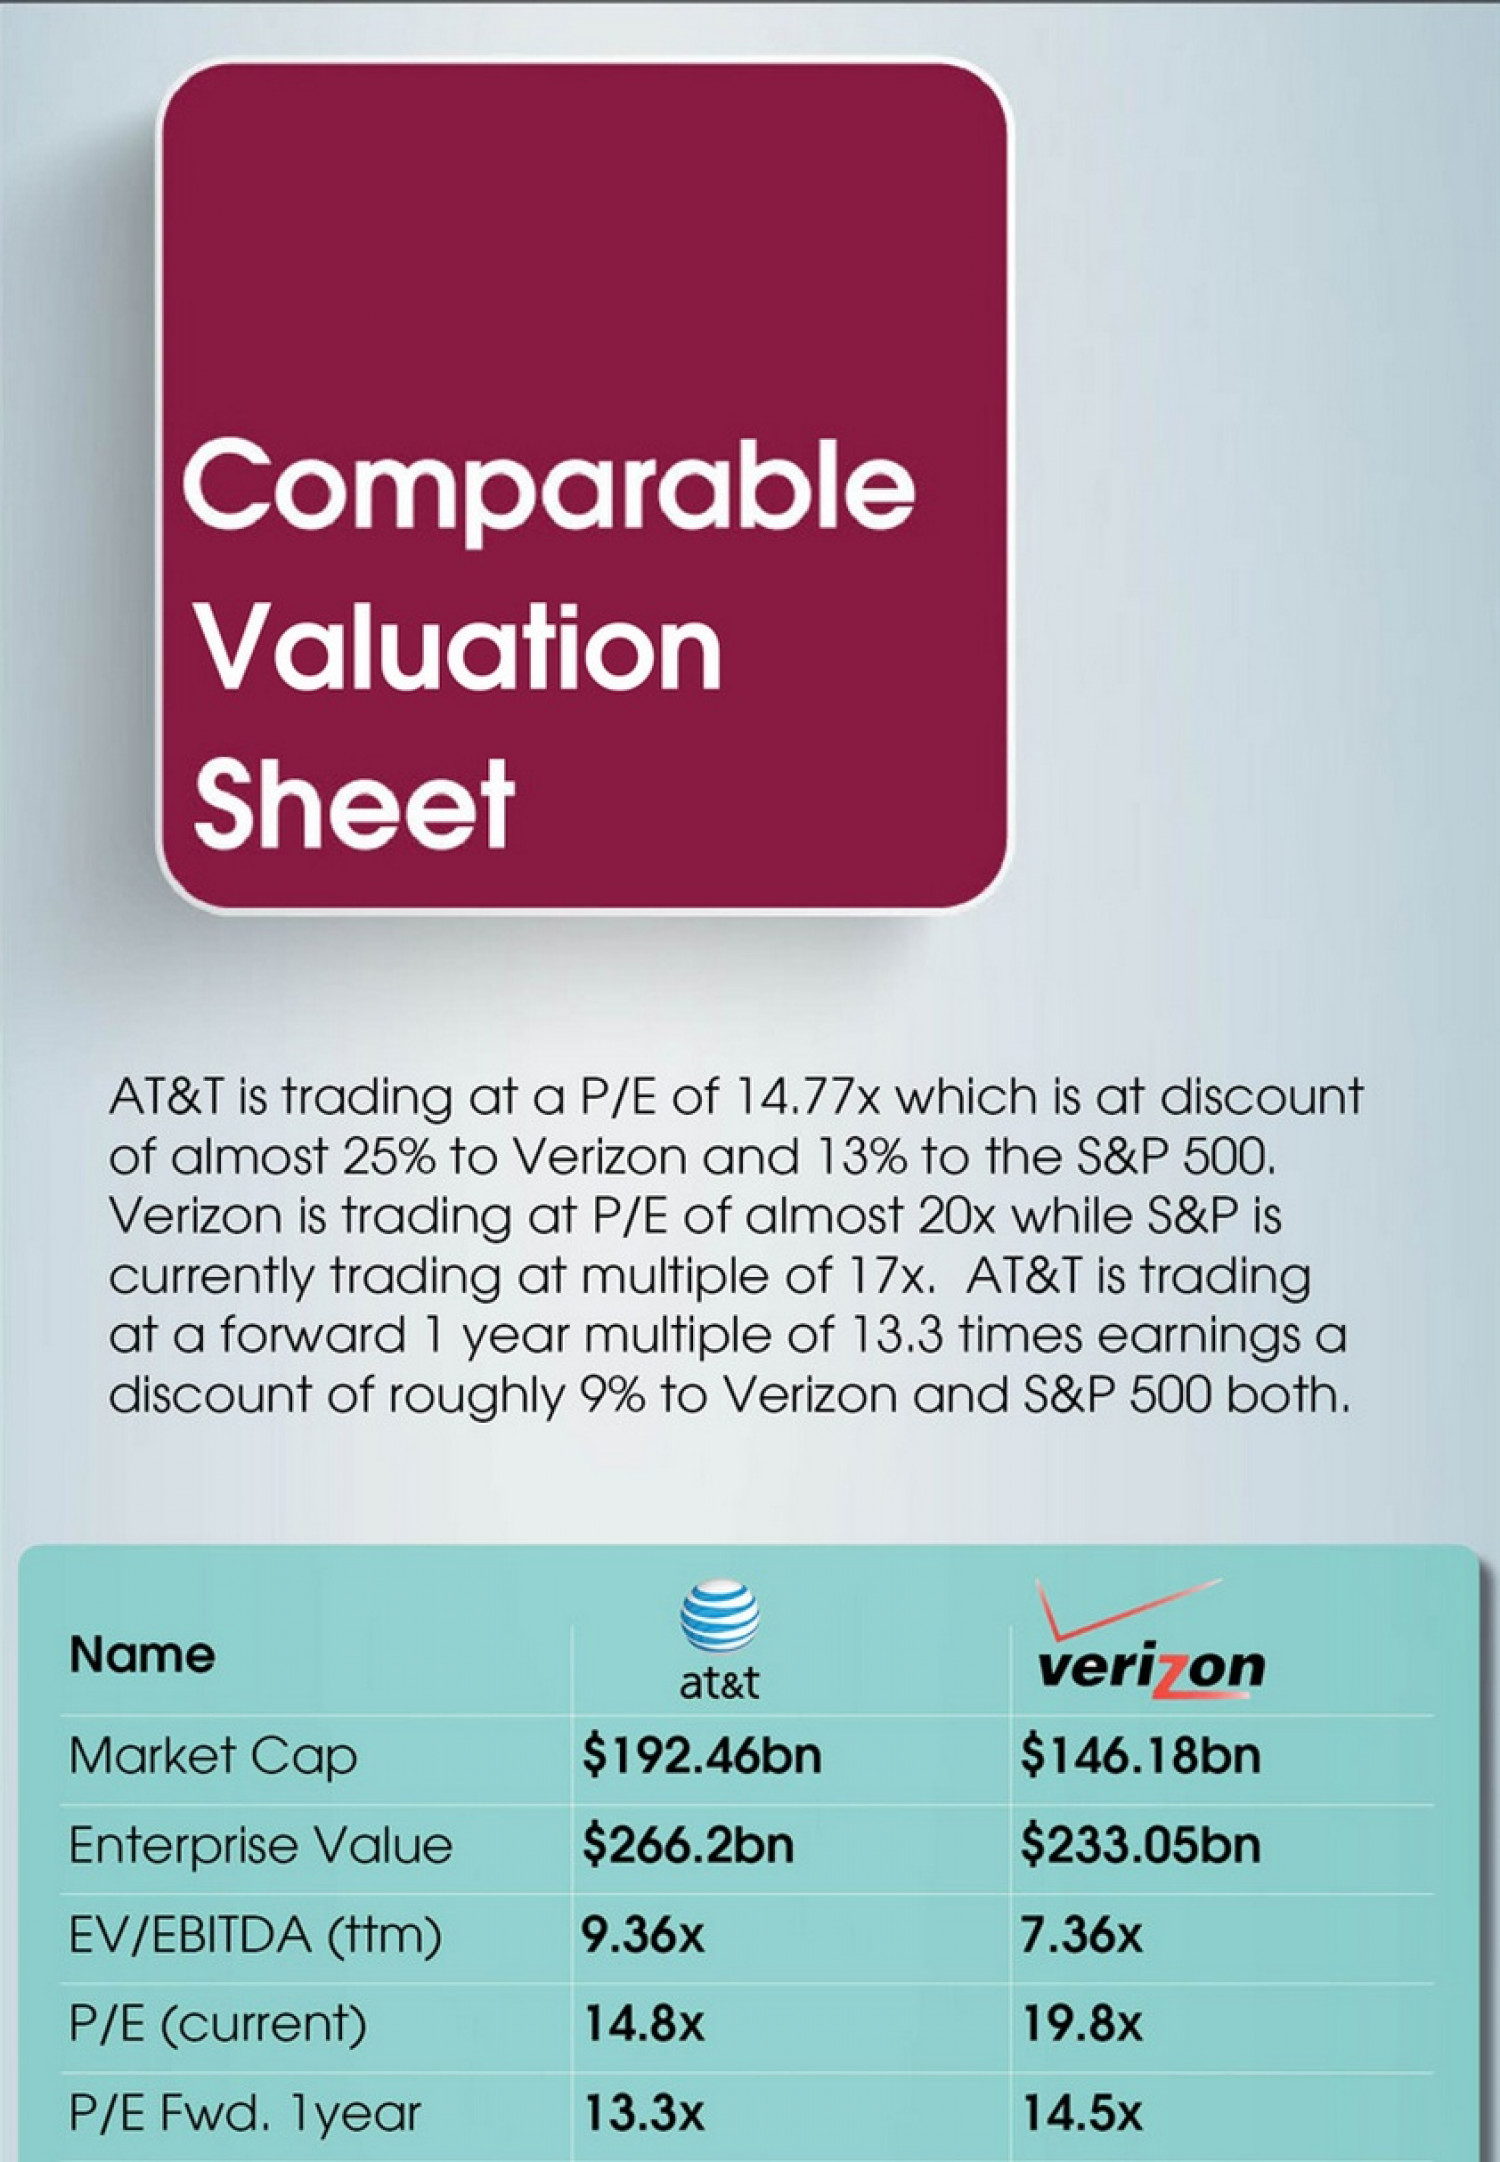 AT&T Valuation Sheet Infographic